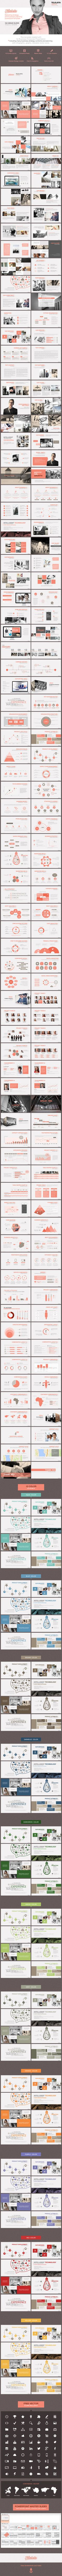 Telelista – PowerPoint Template. It utilizes design with modern functionality, Strategy ideal for any type of business. This slide comes with infographic elements, charts, graphs and icons. This presentation template is so adaptable that it can be used in many different businesses. With this many slides you are able to make a complete PowerPoint presentation that the best suit your needs.